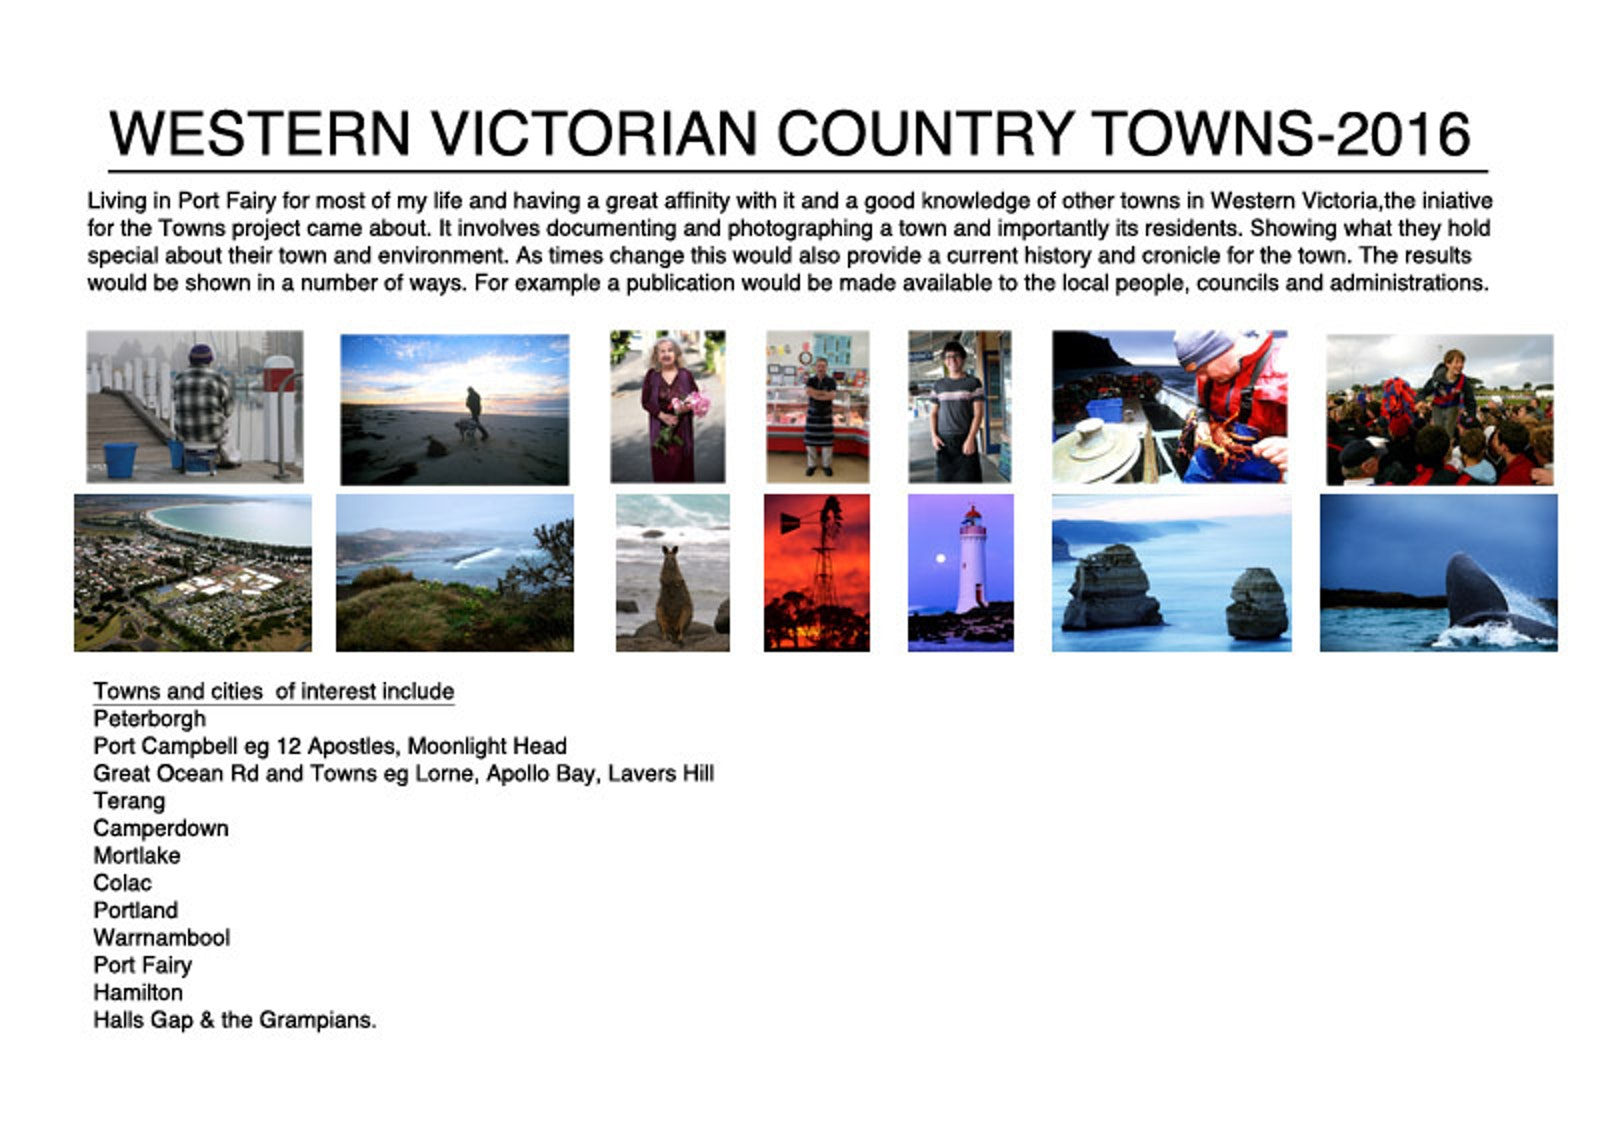 South West Victoria Country Towns and Cities